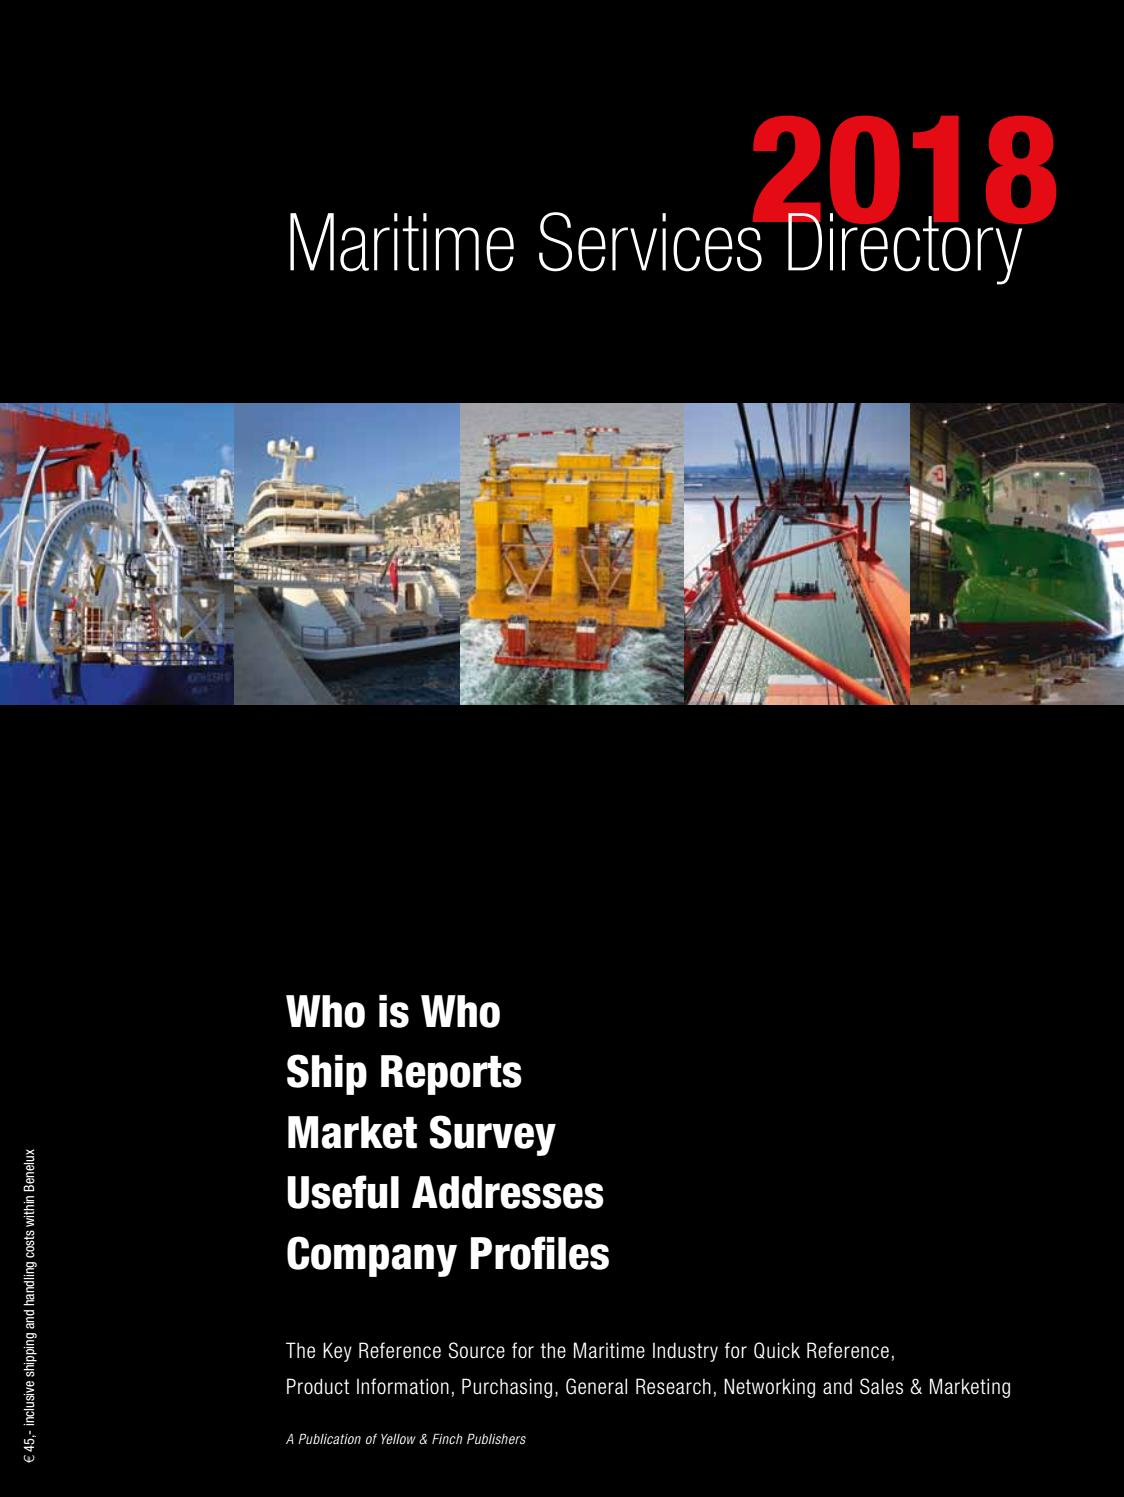 Maritime Services Directory 2018 By Yellow Finch Publishers Issuu Home Gt Products Catalog Multilayer Pcb Gps Printed Circuit Boards